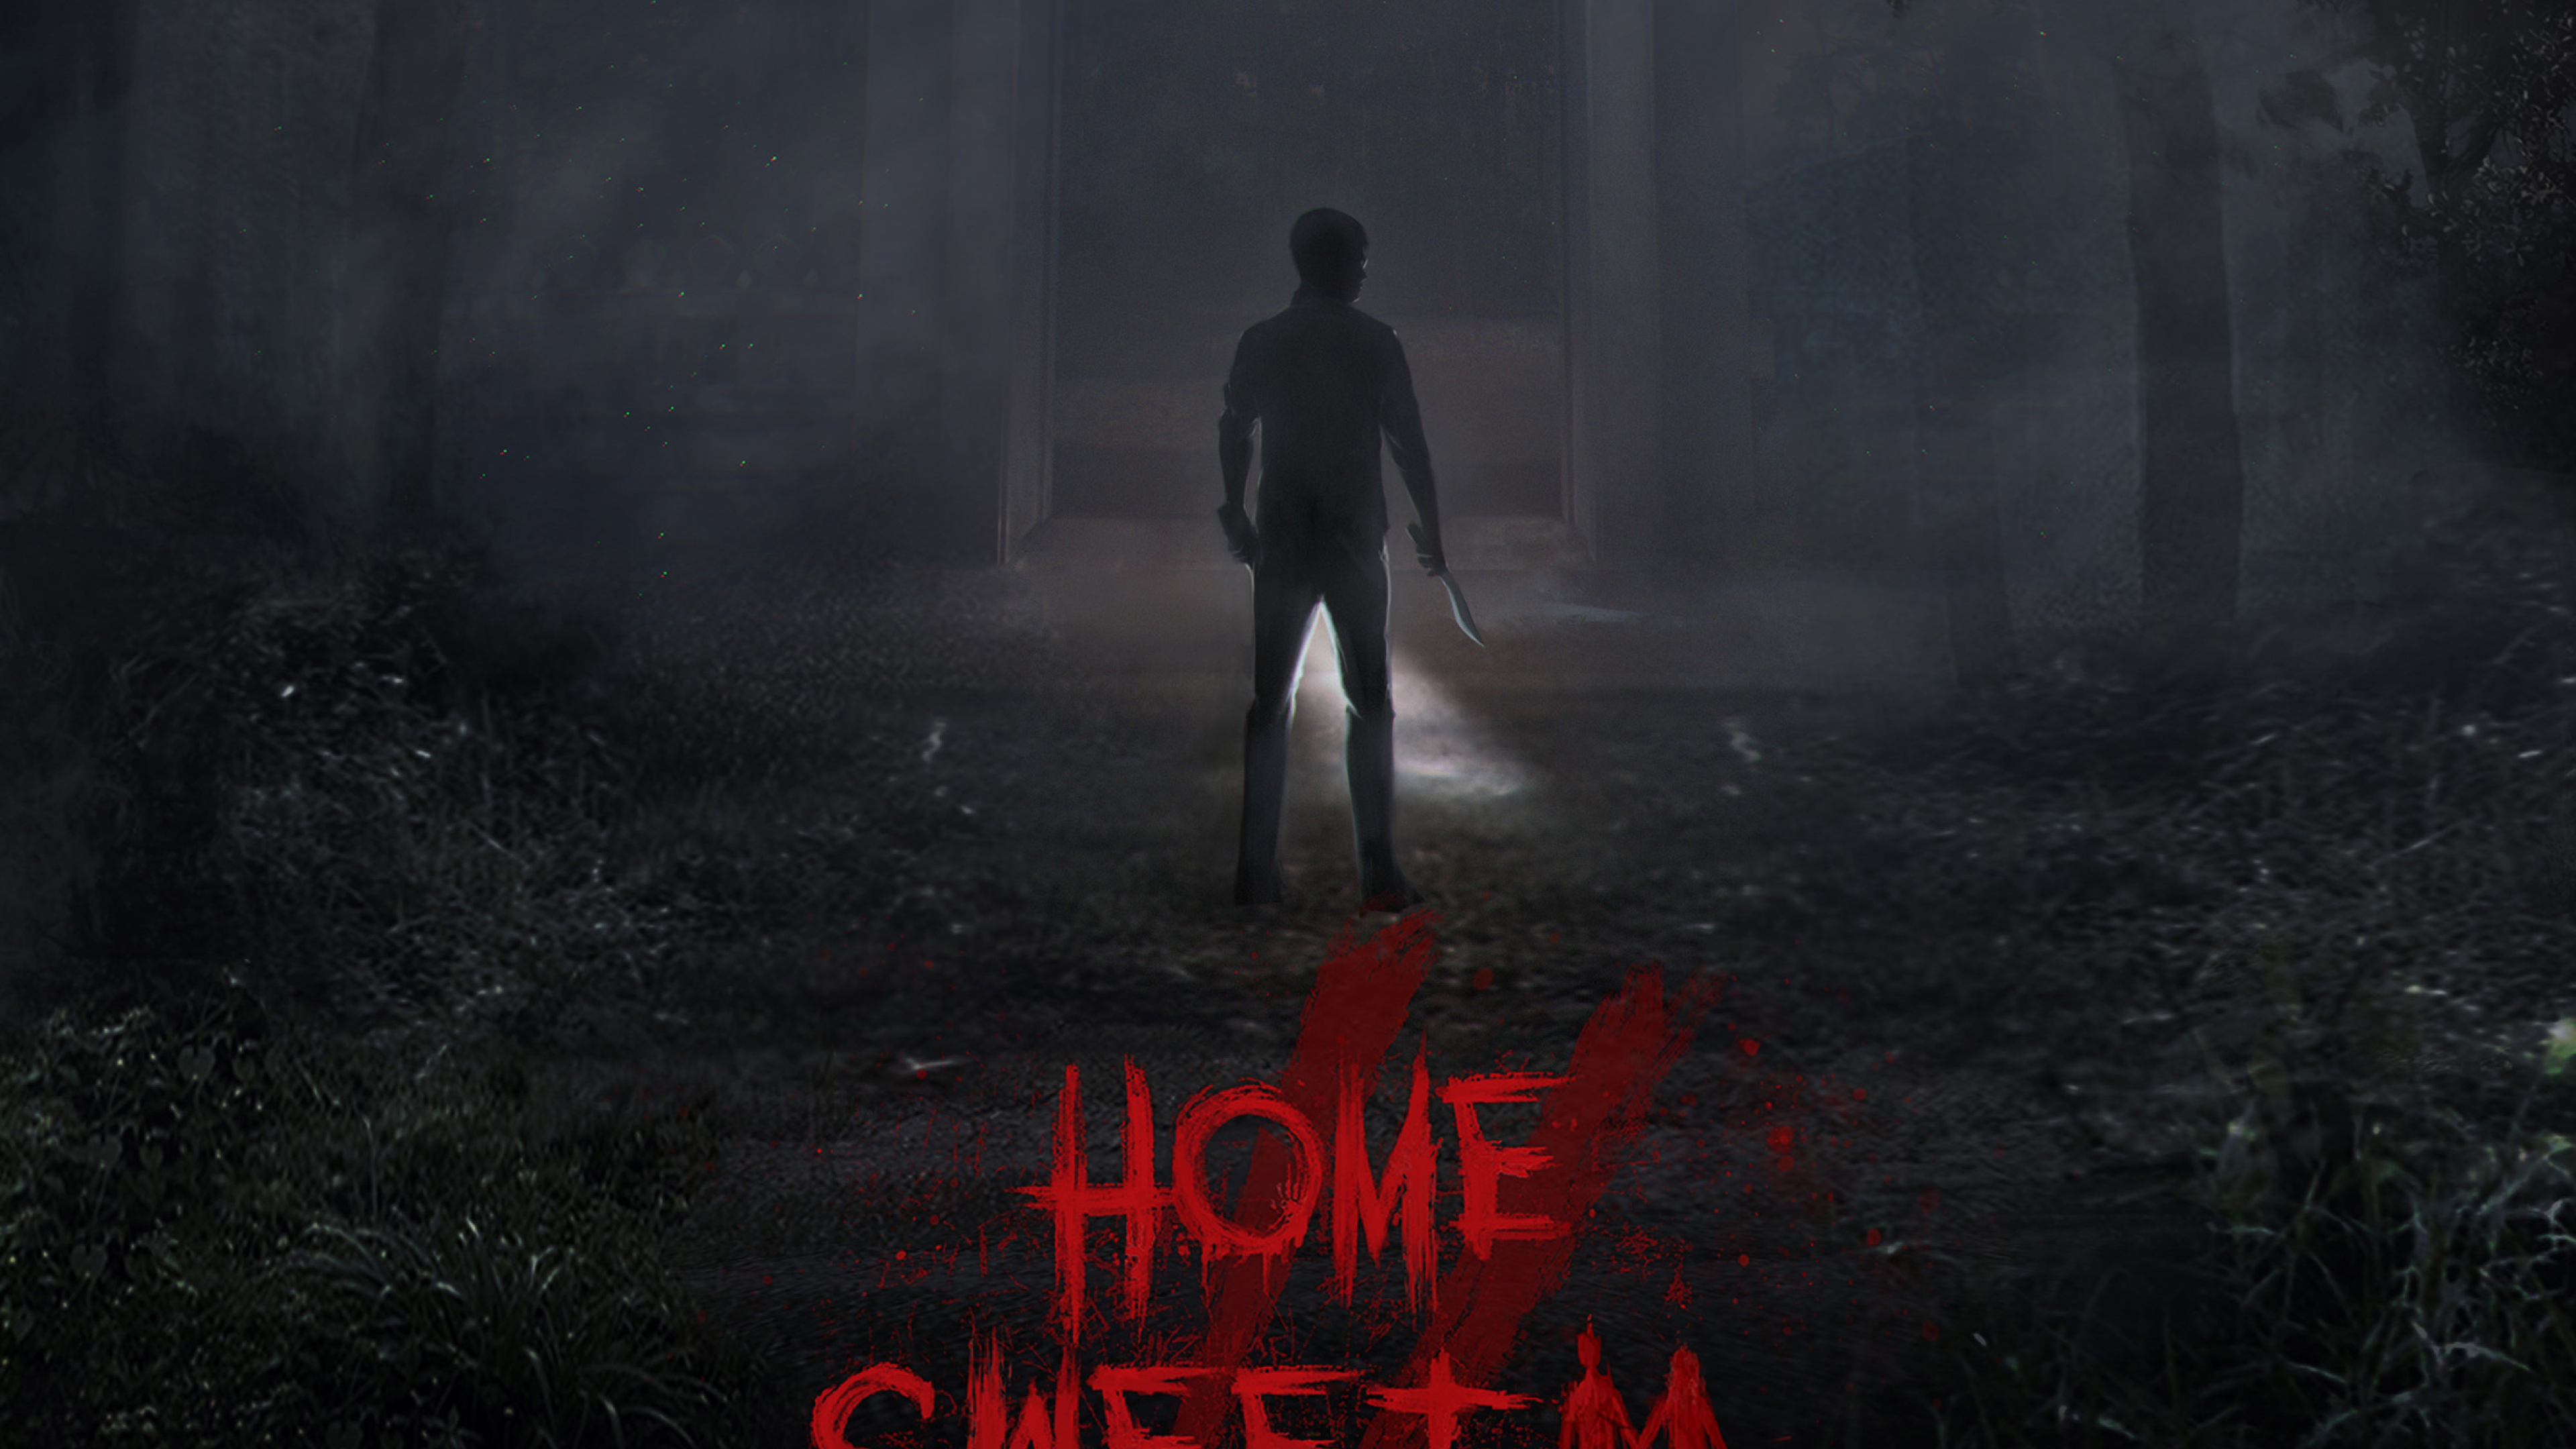 3840x2160 Home Sweet Home Game 4k Wallpaper Hd Games 4k Wallpapers Images Photos And Background